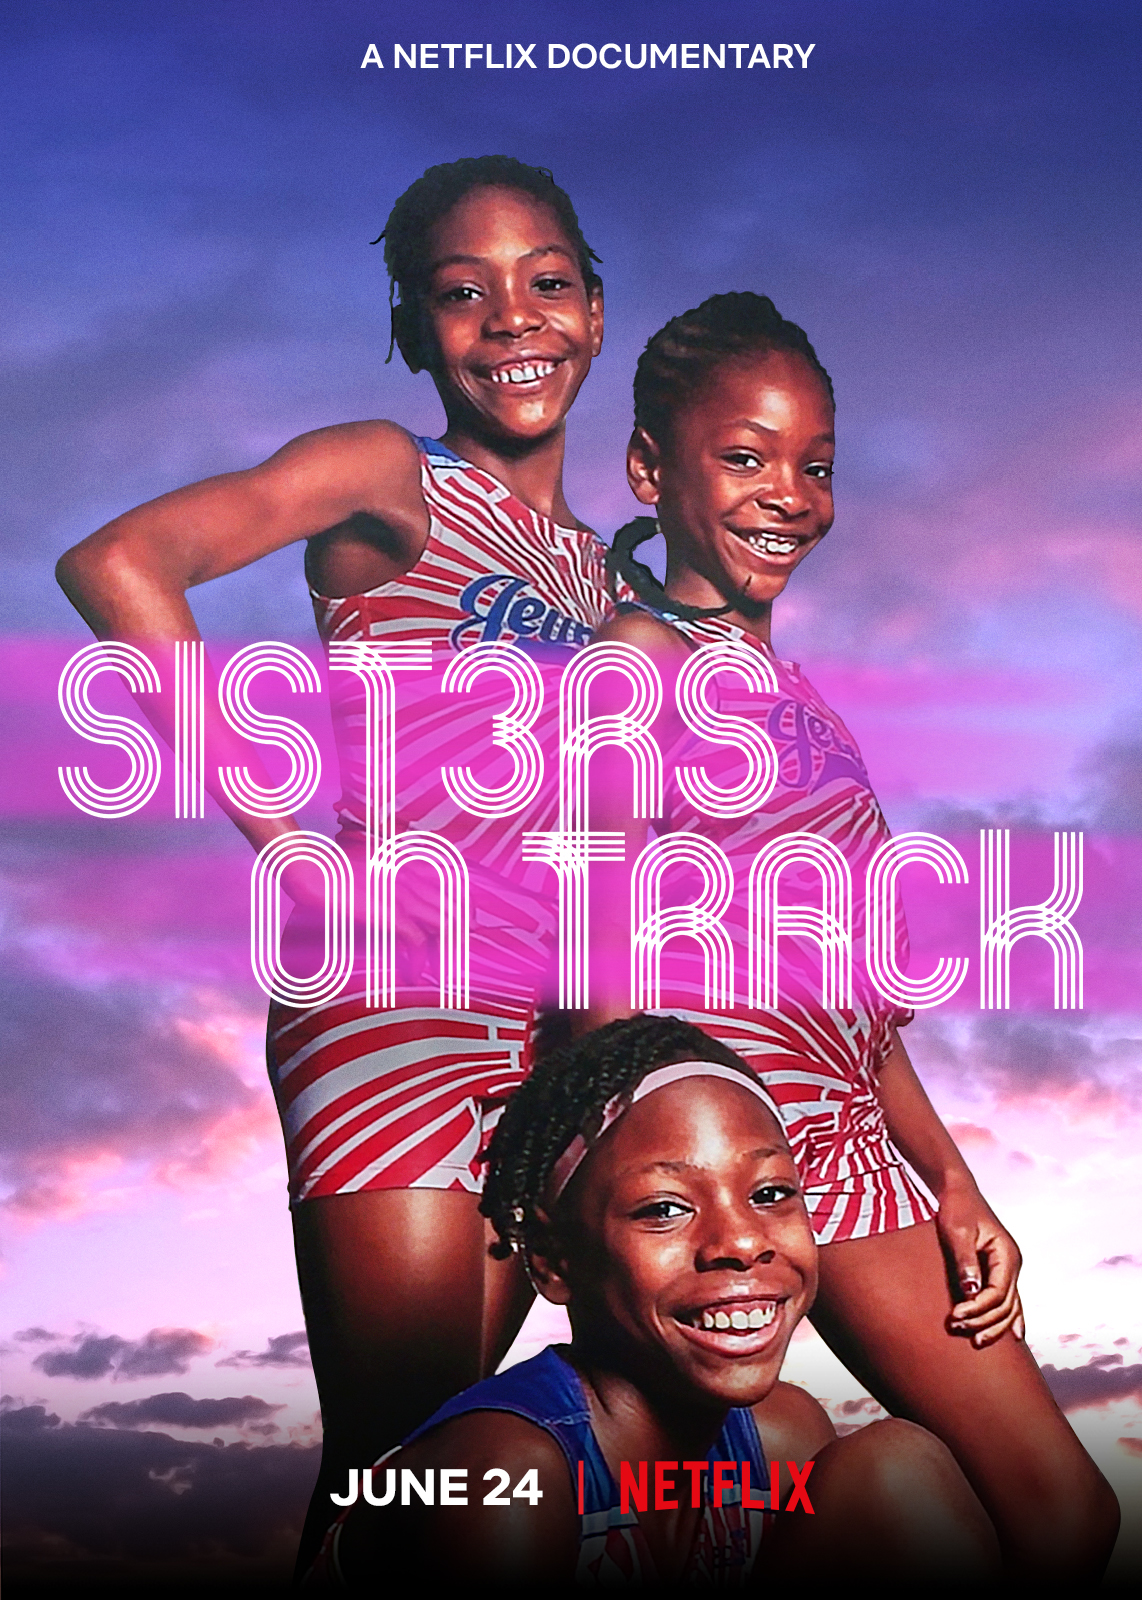 Sisters on Track for Netflix